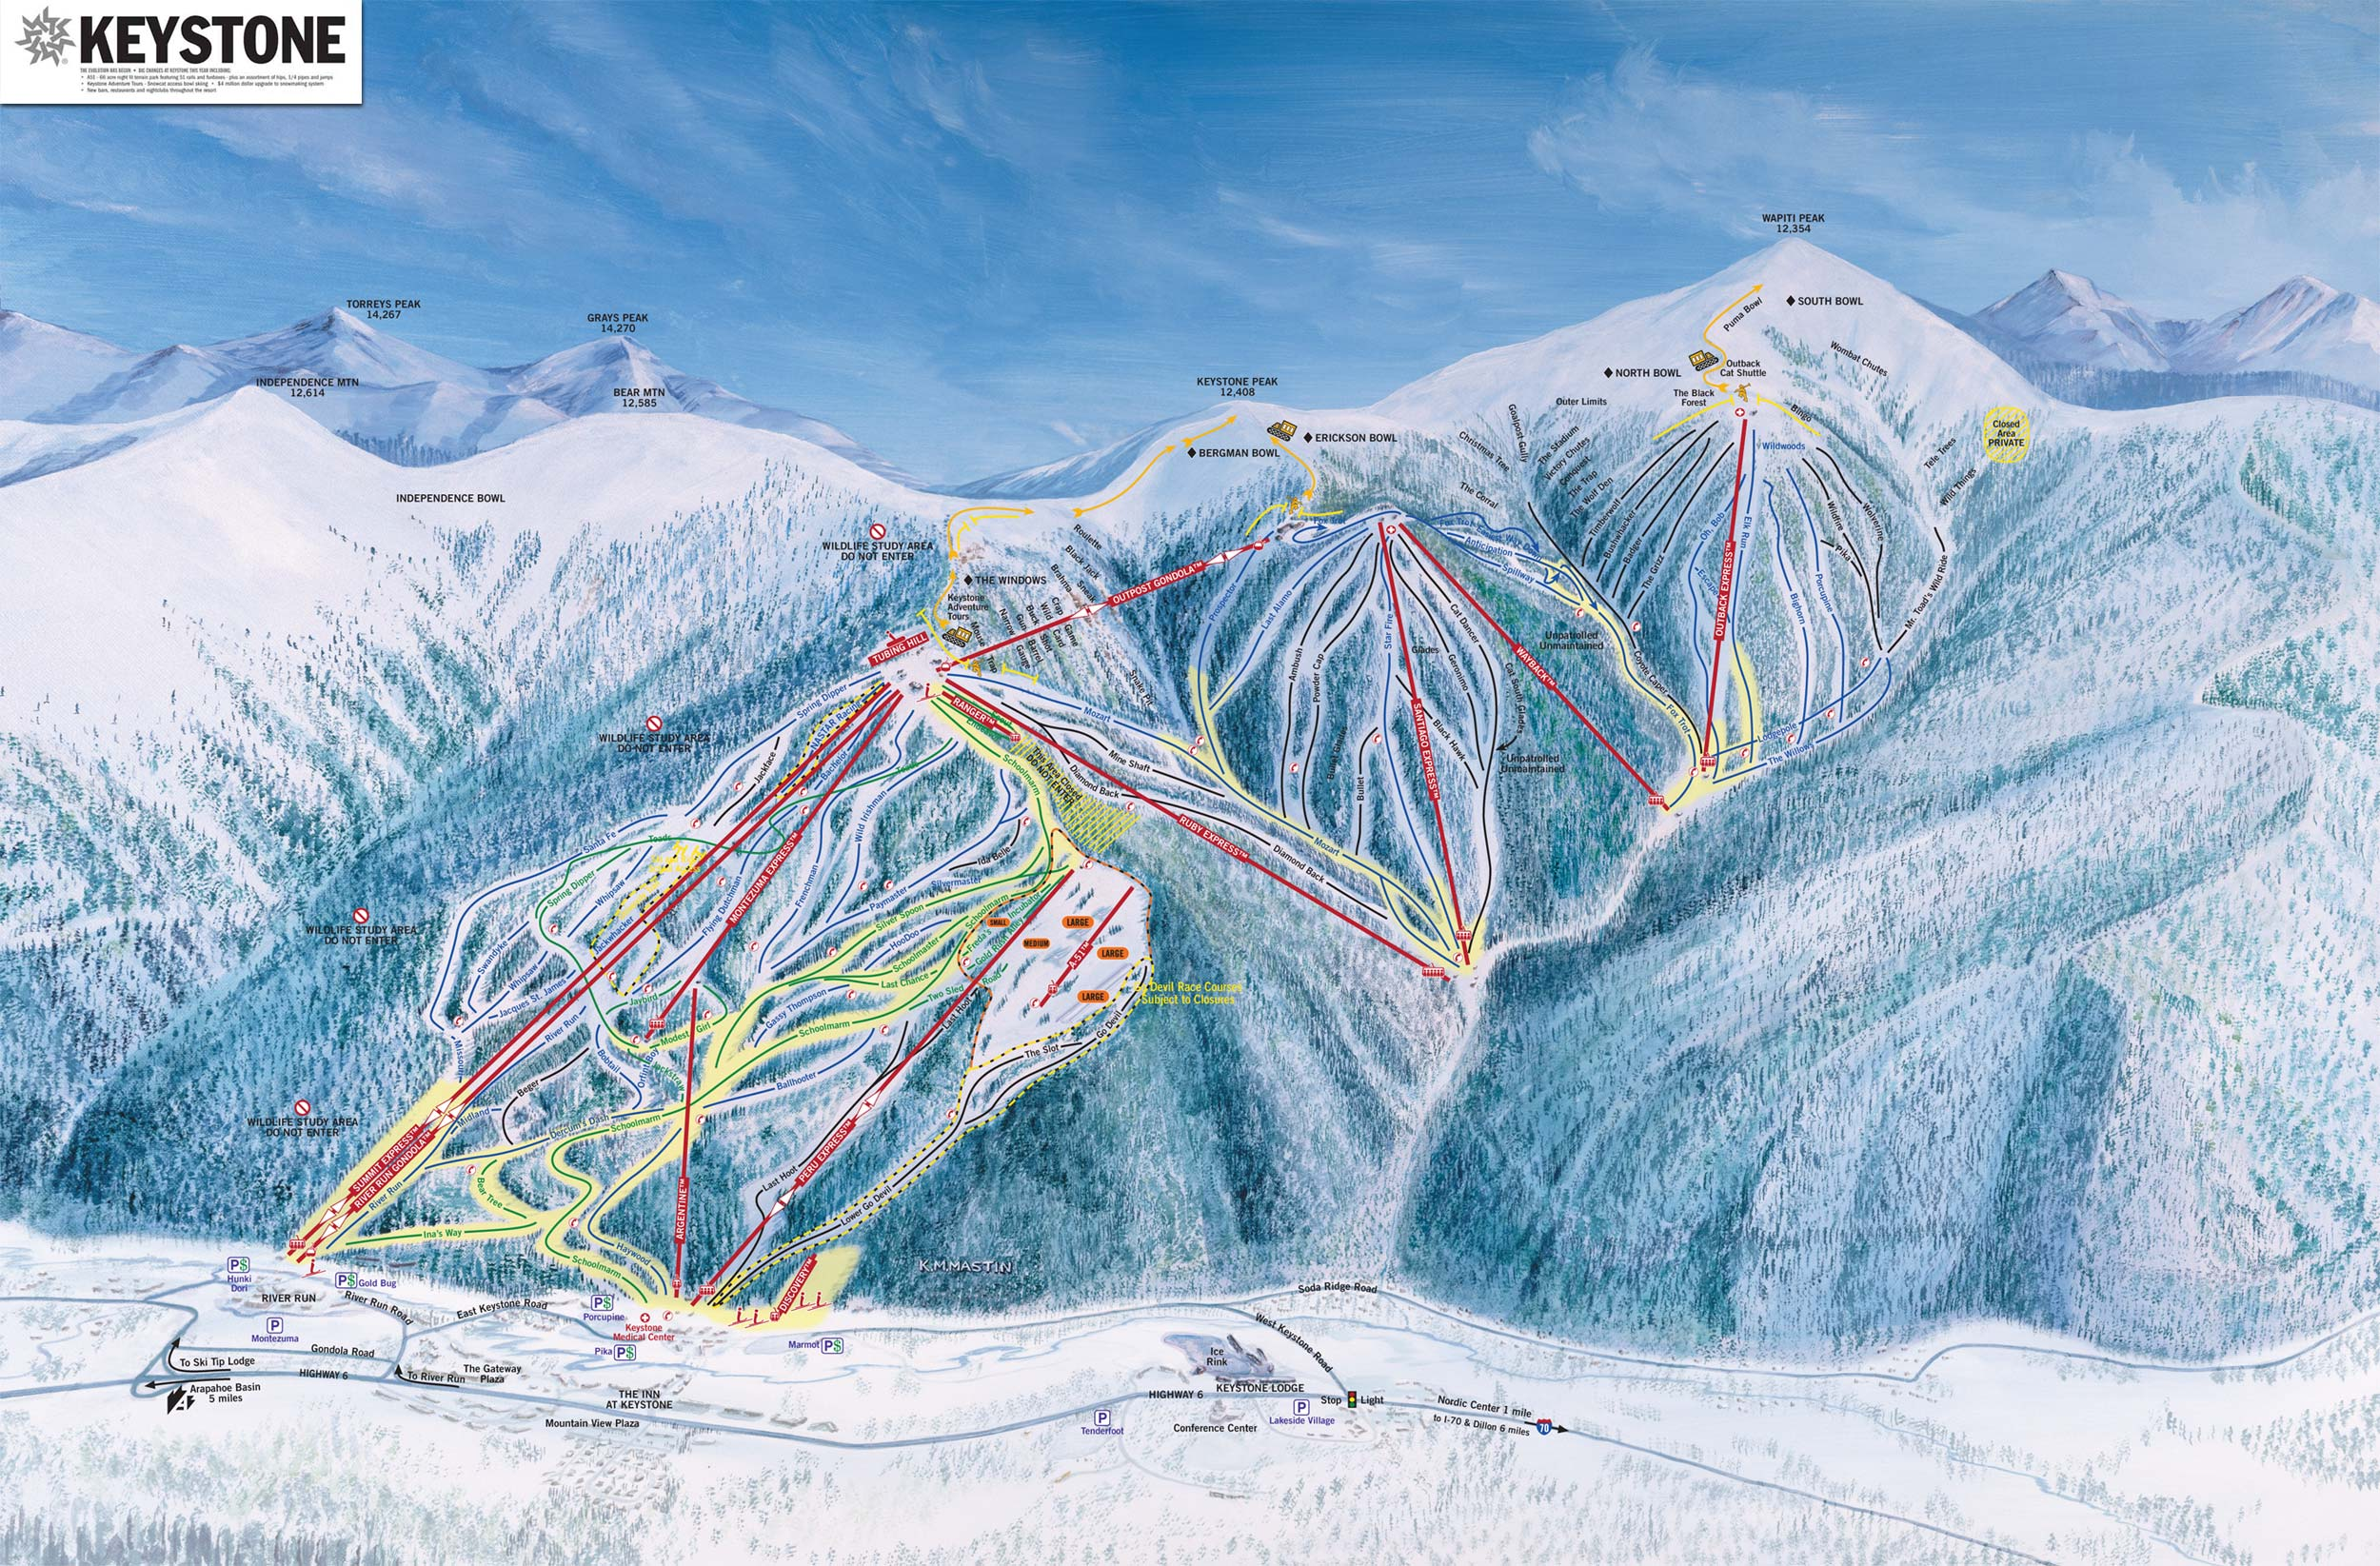 Keystone Piste / Trail Map